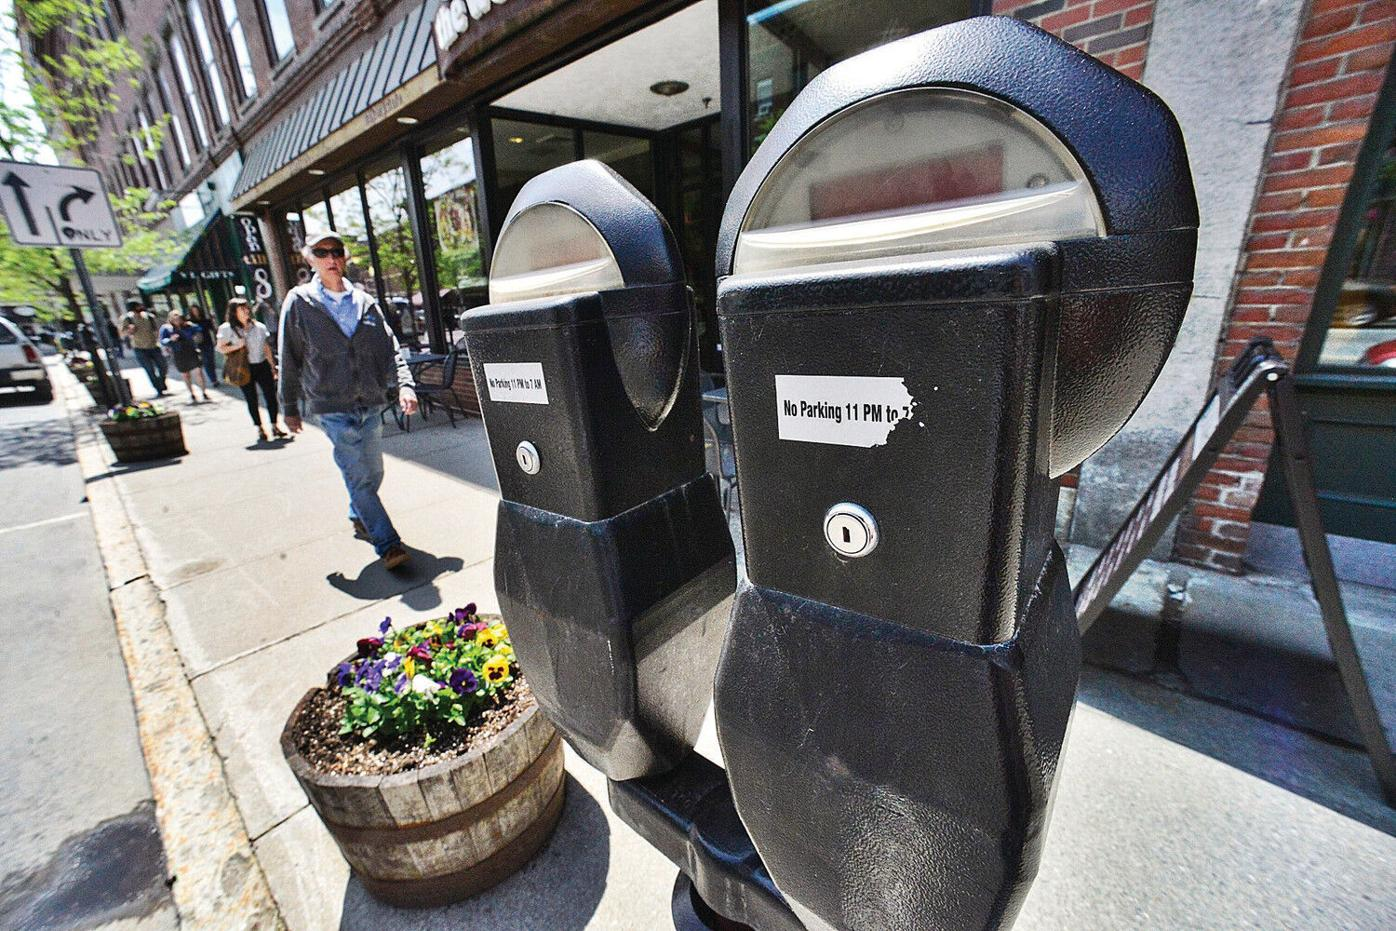 New parking meters would take plastic